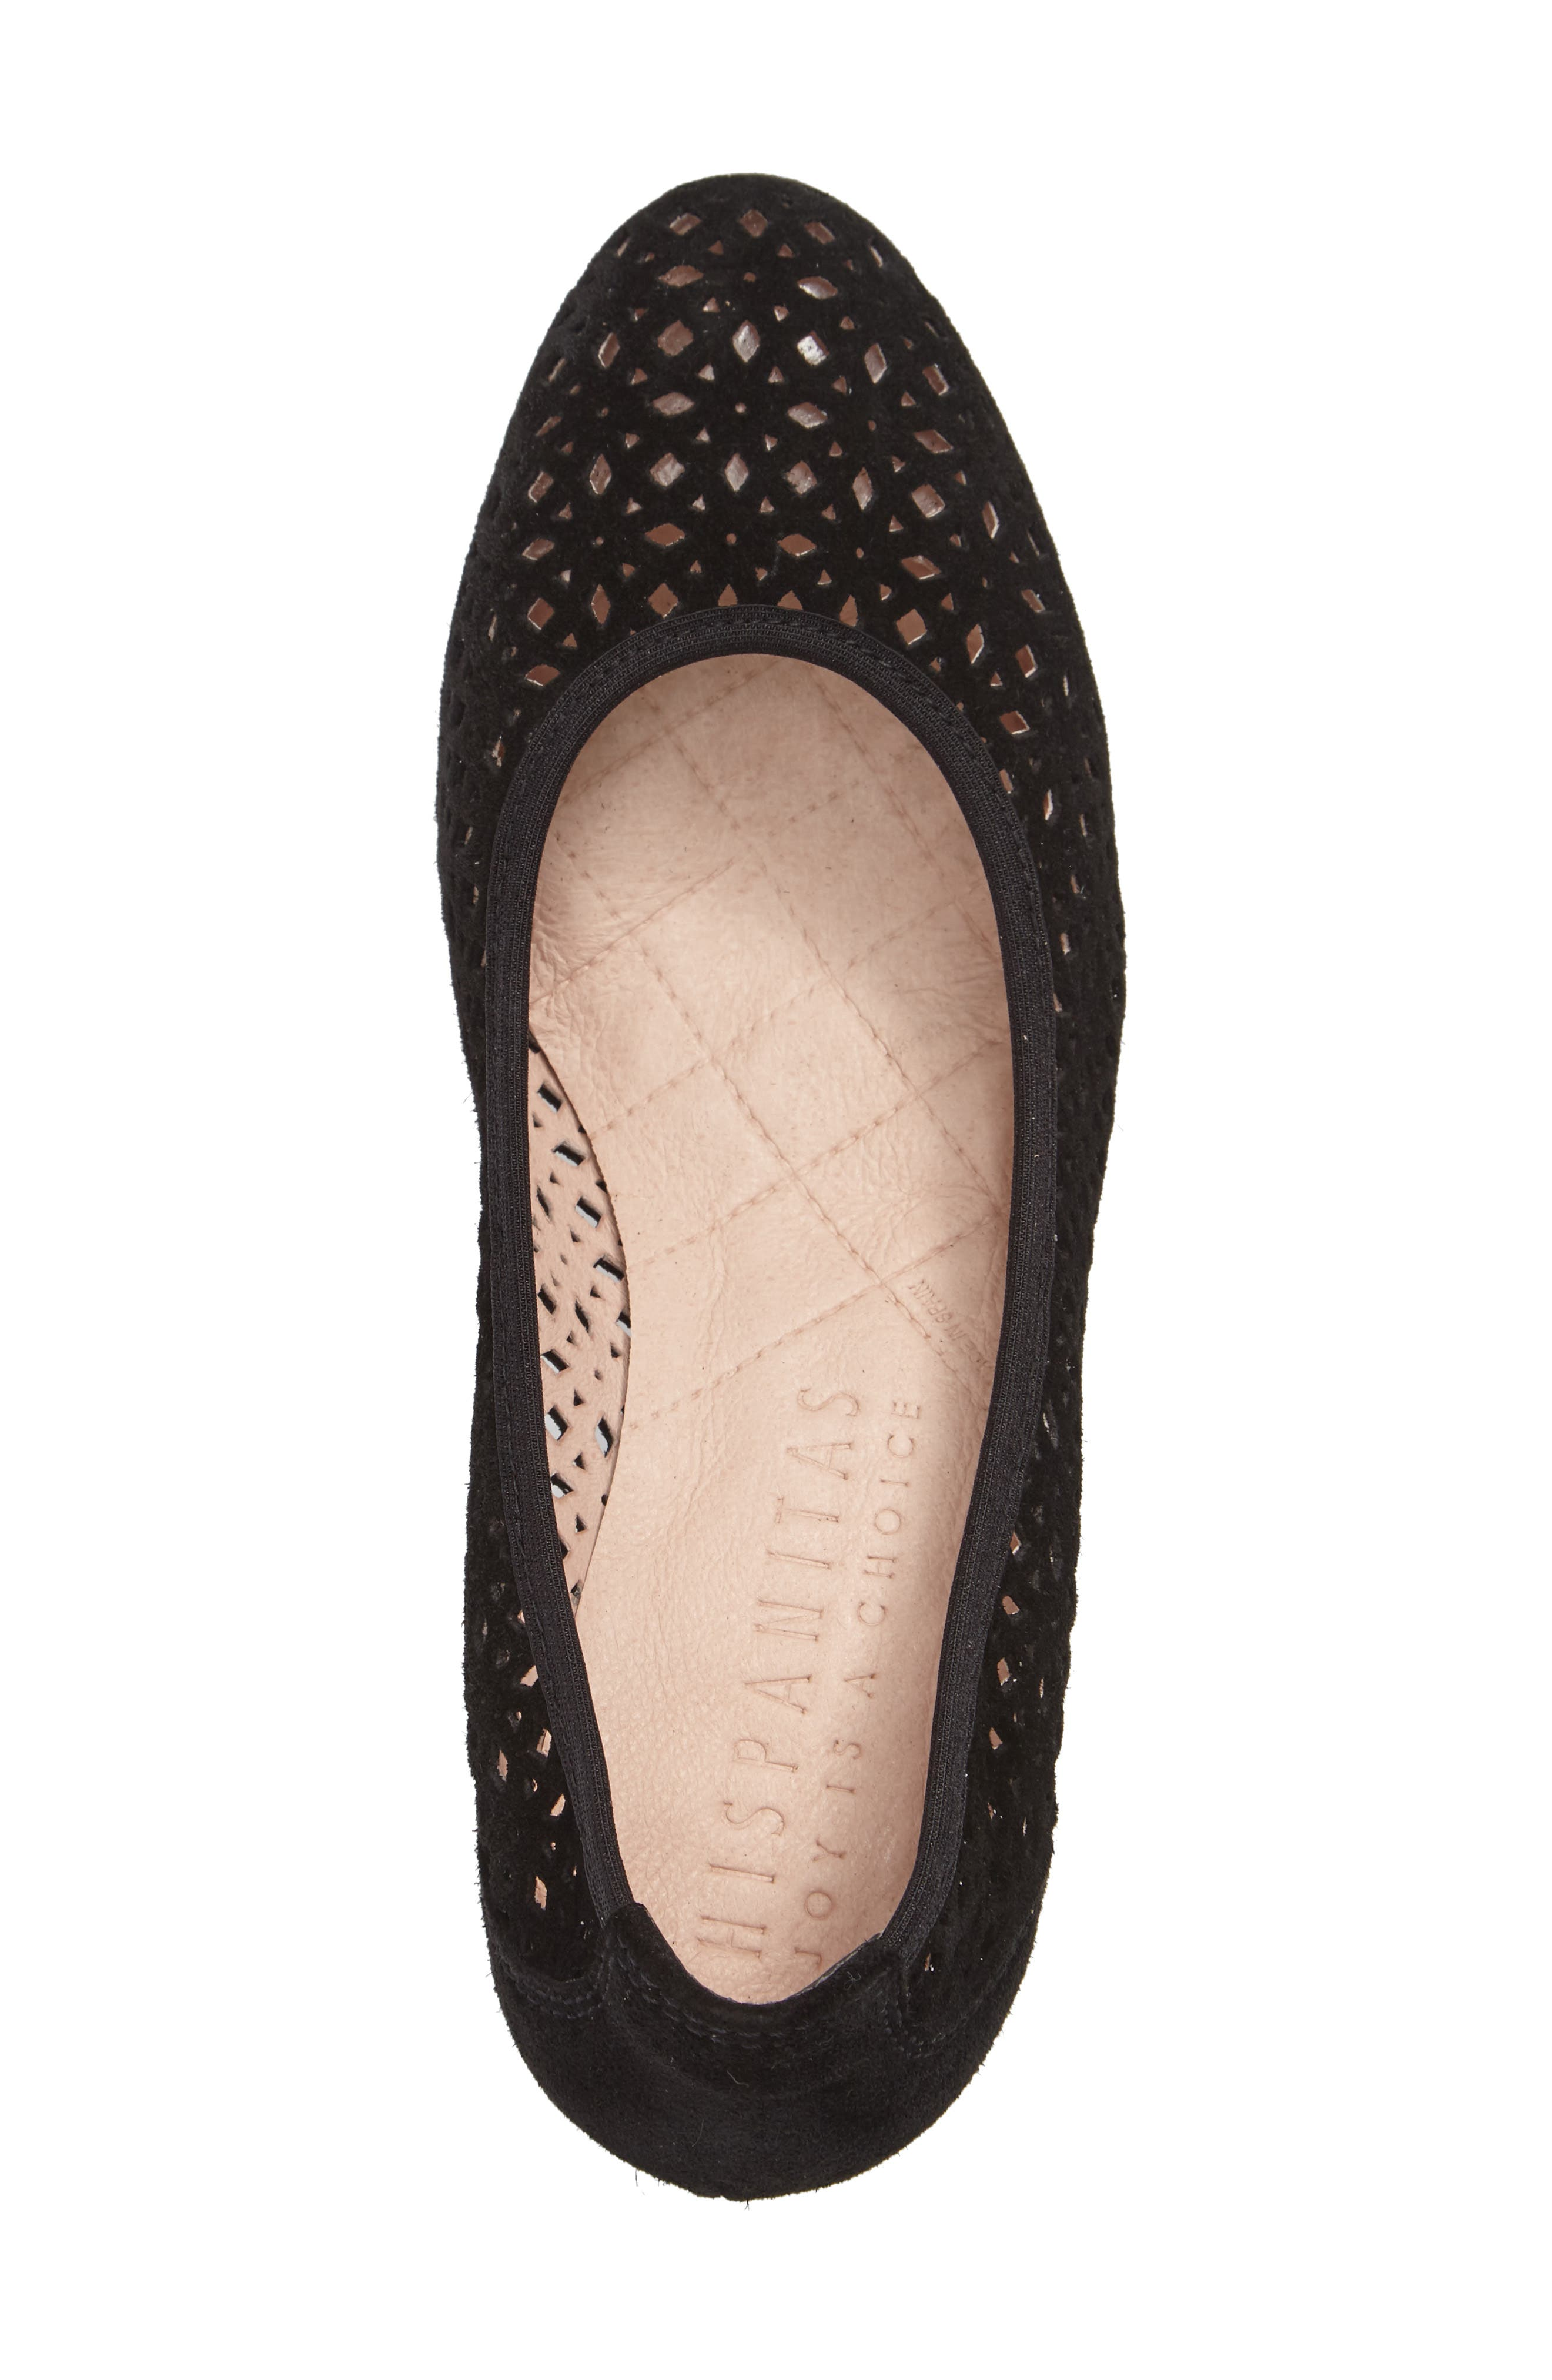 HISPANITAS,                             Jovanna Perforated Pump,                             Alternate thumbnail 3, color,                             001